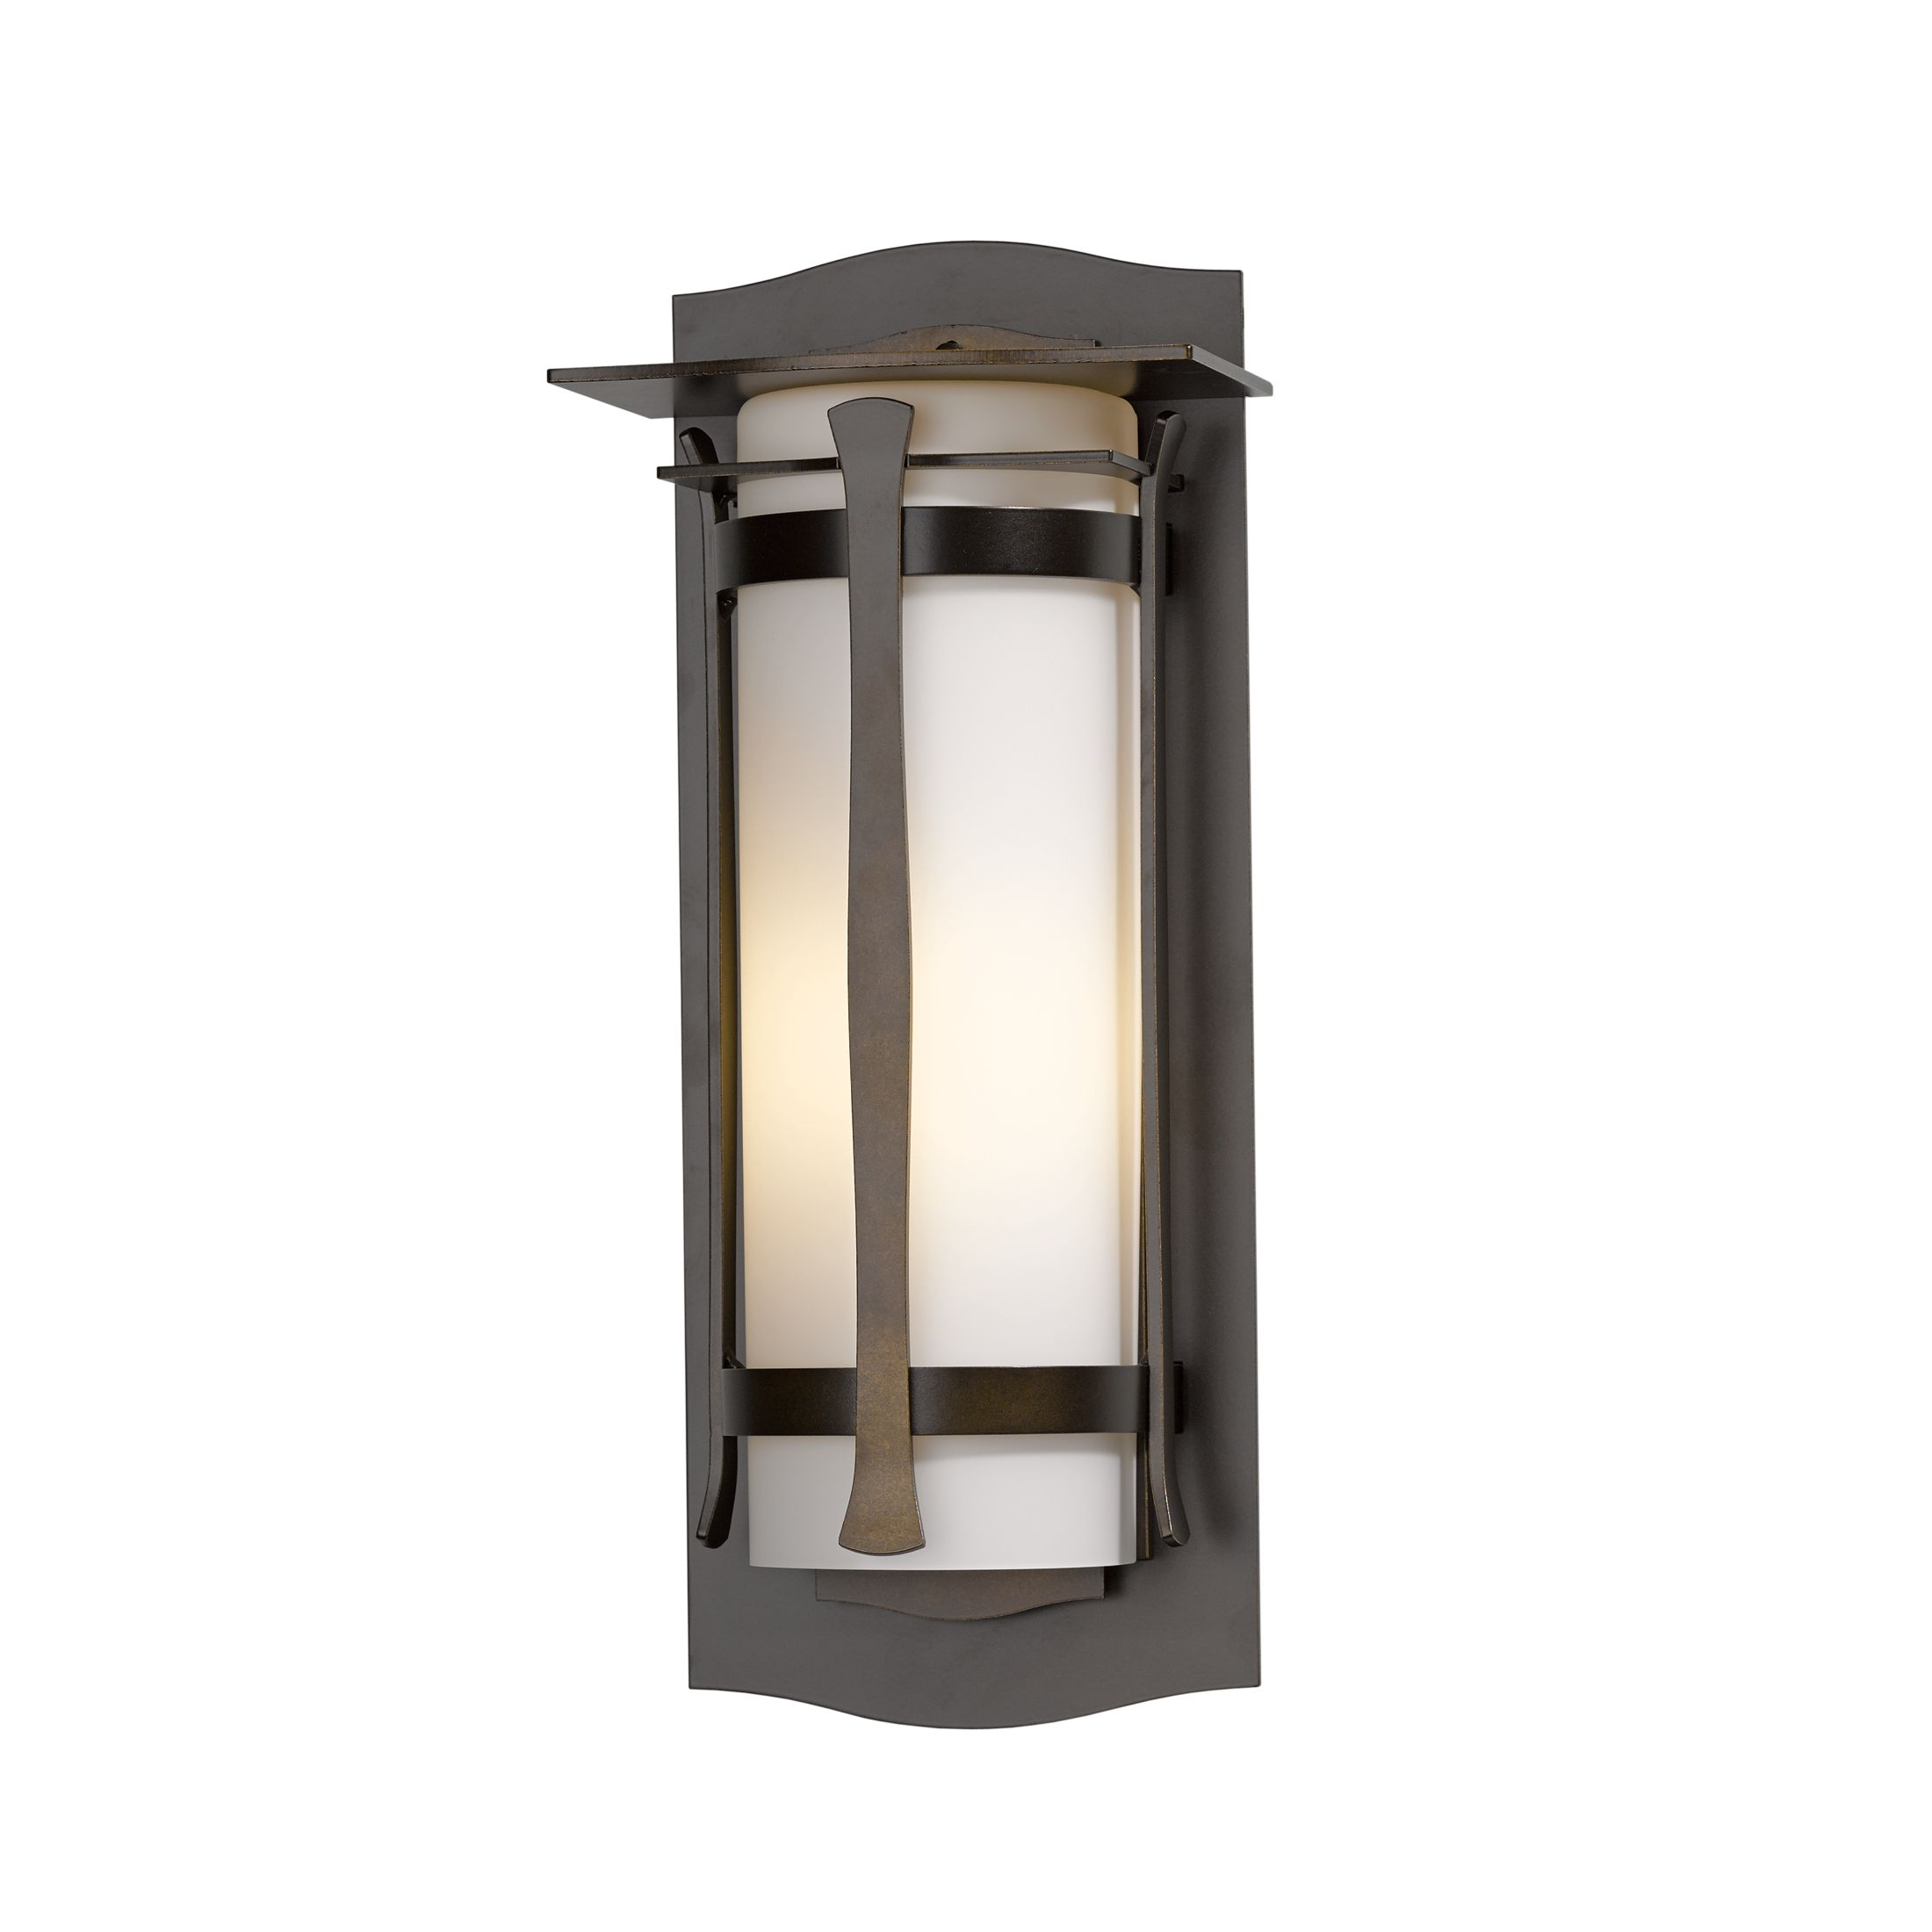 Thumbnail for Sonora Interior Sconce